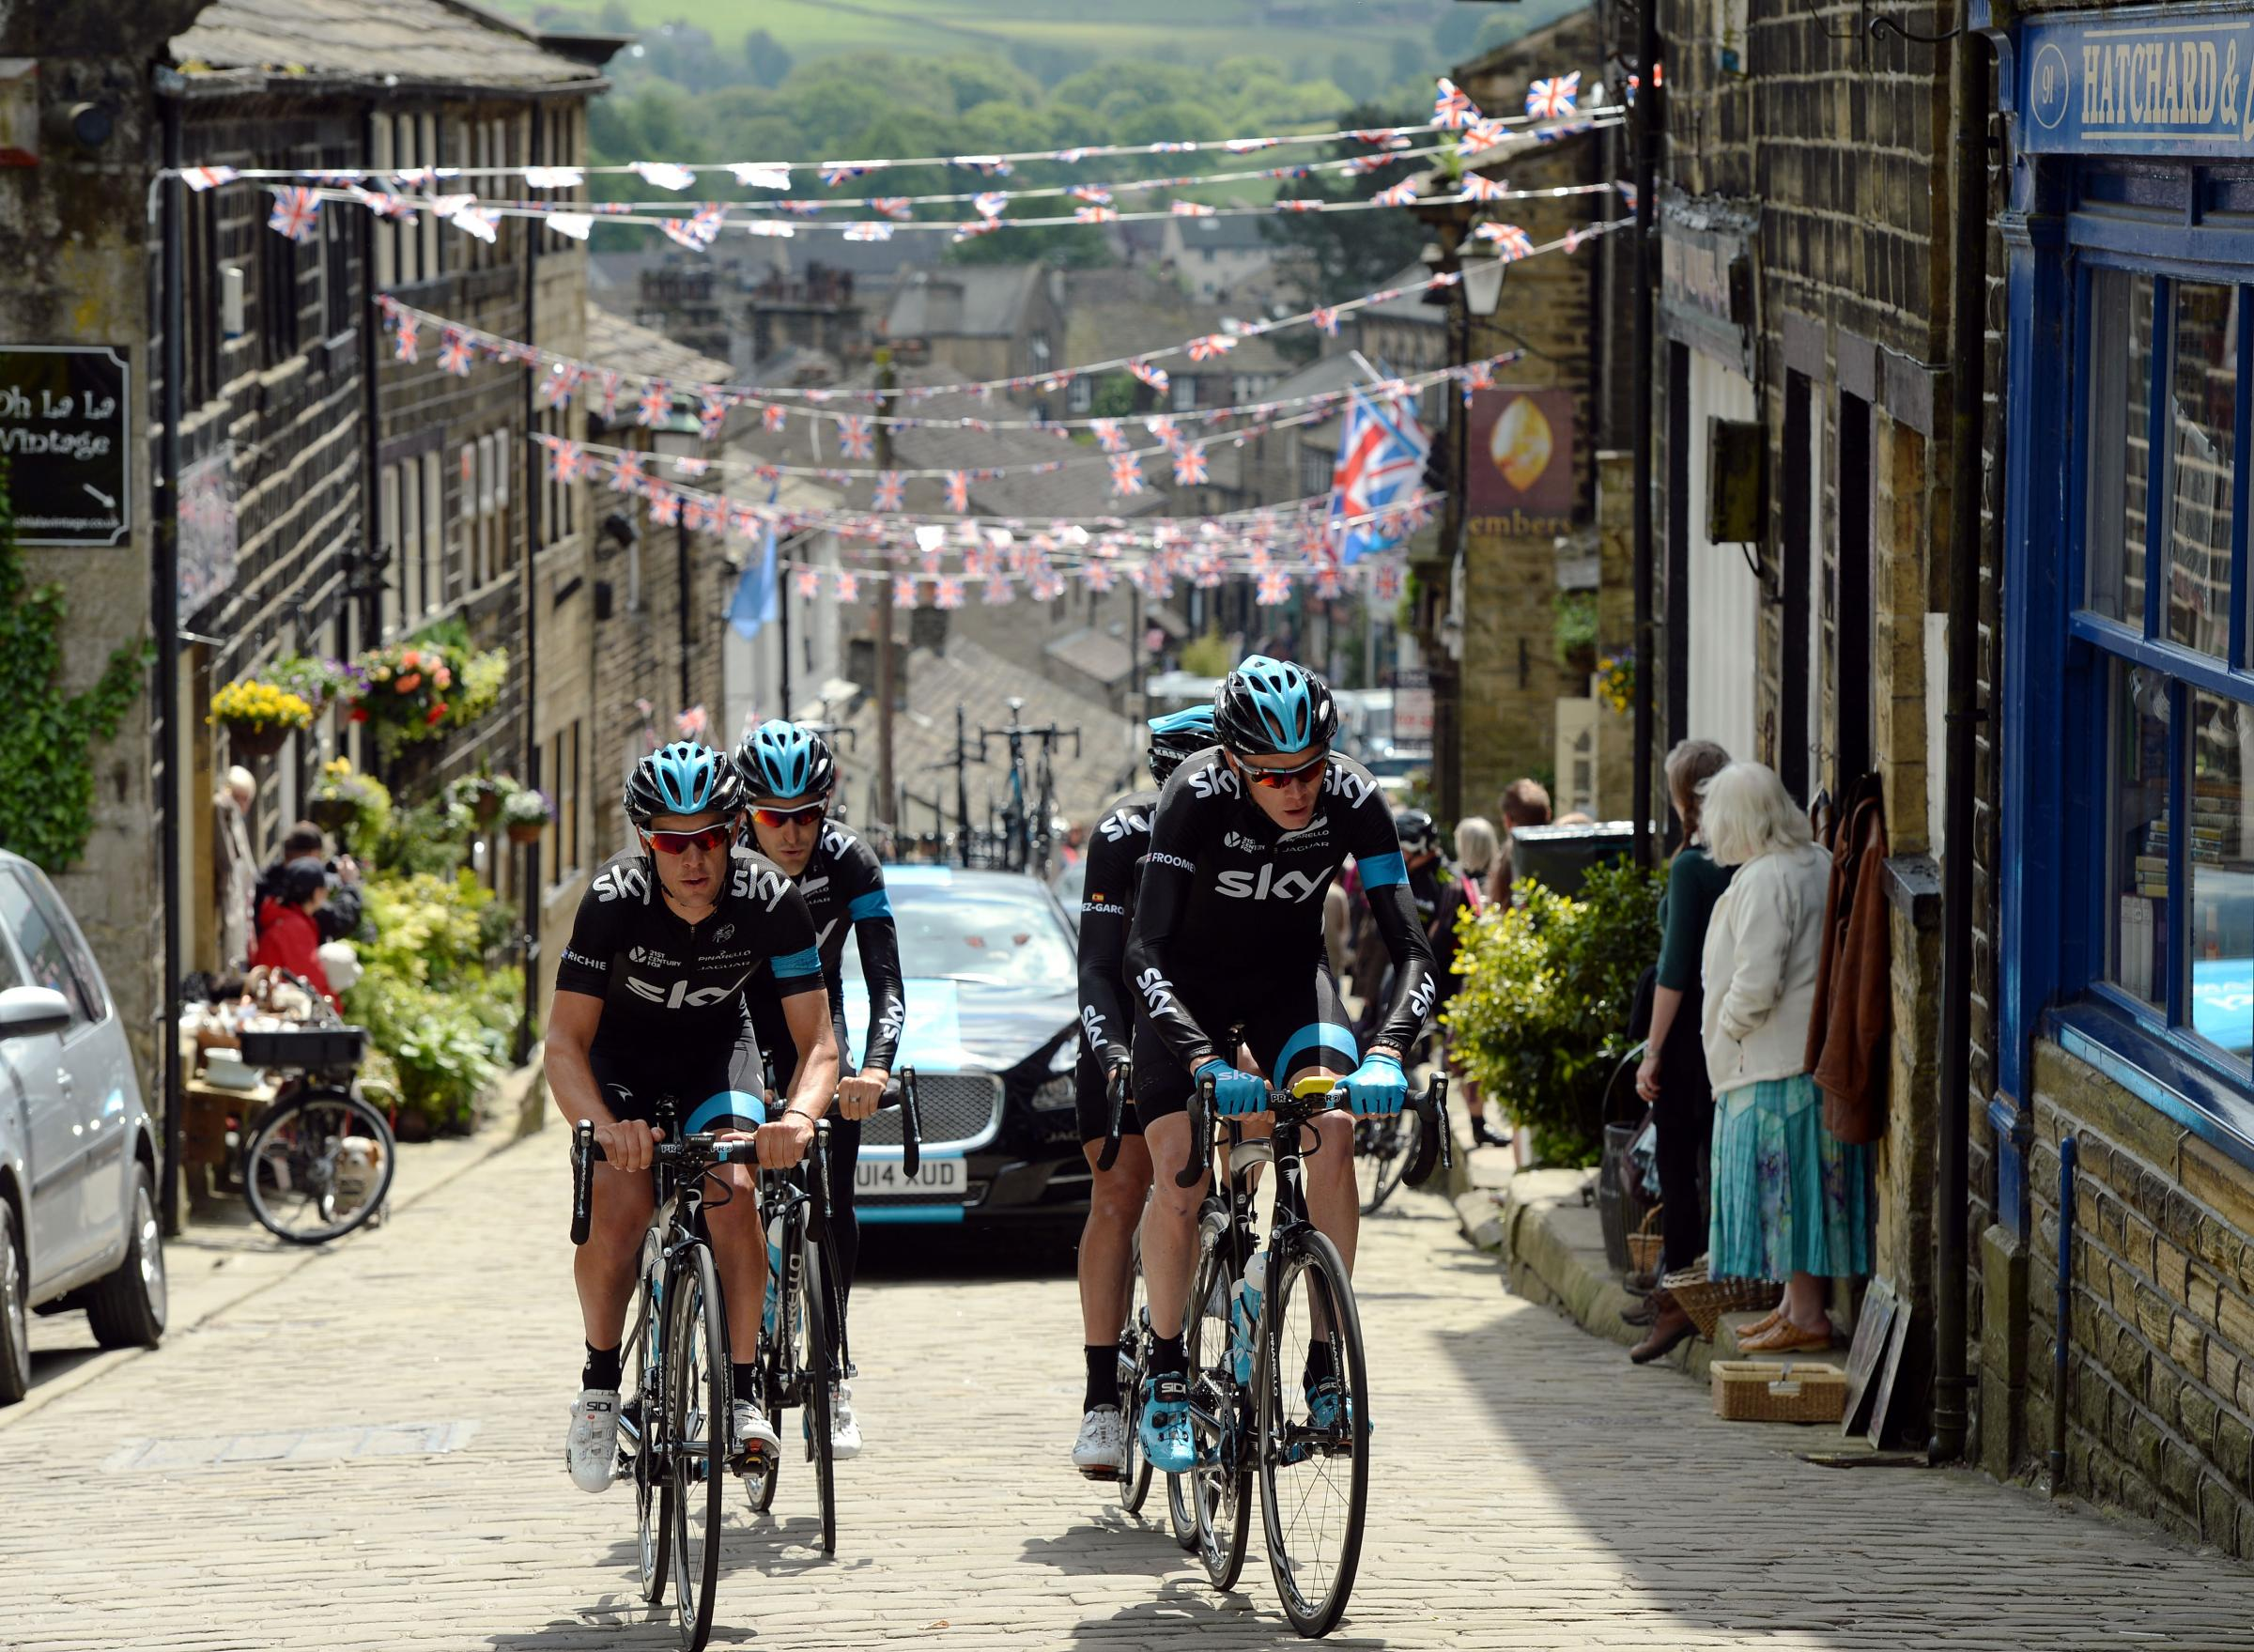 Chris Froome and his Team Sky team-mates give the Tour de Franc